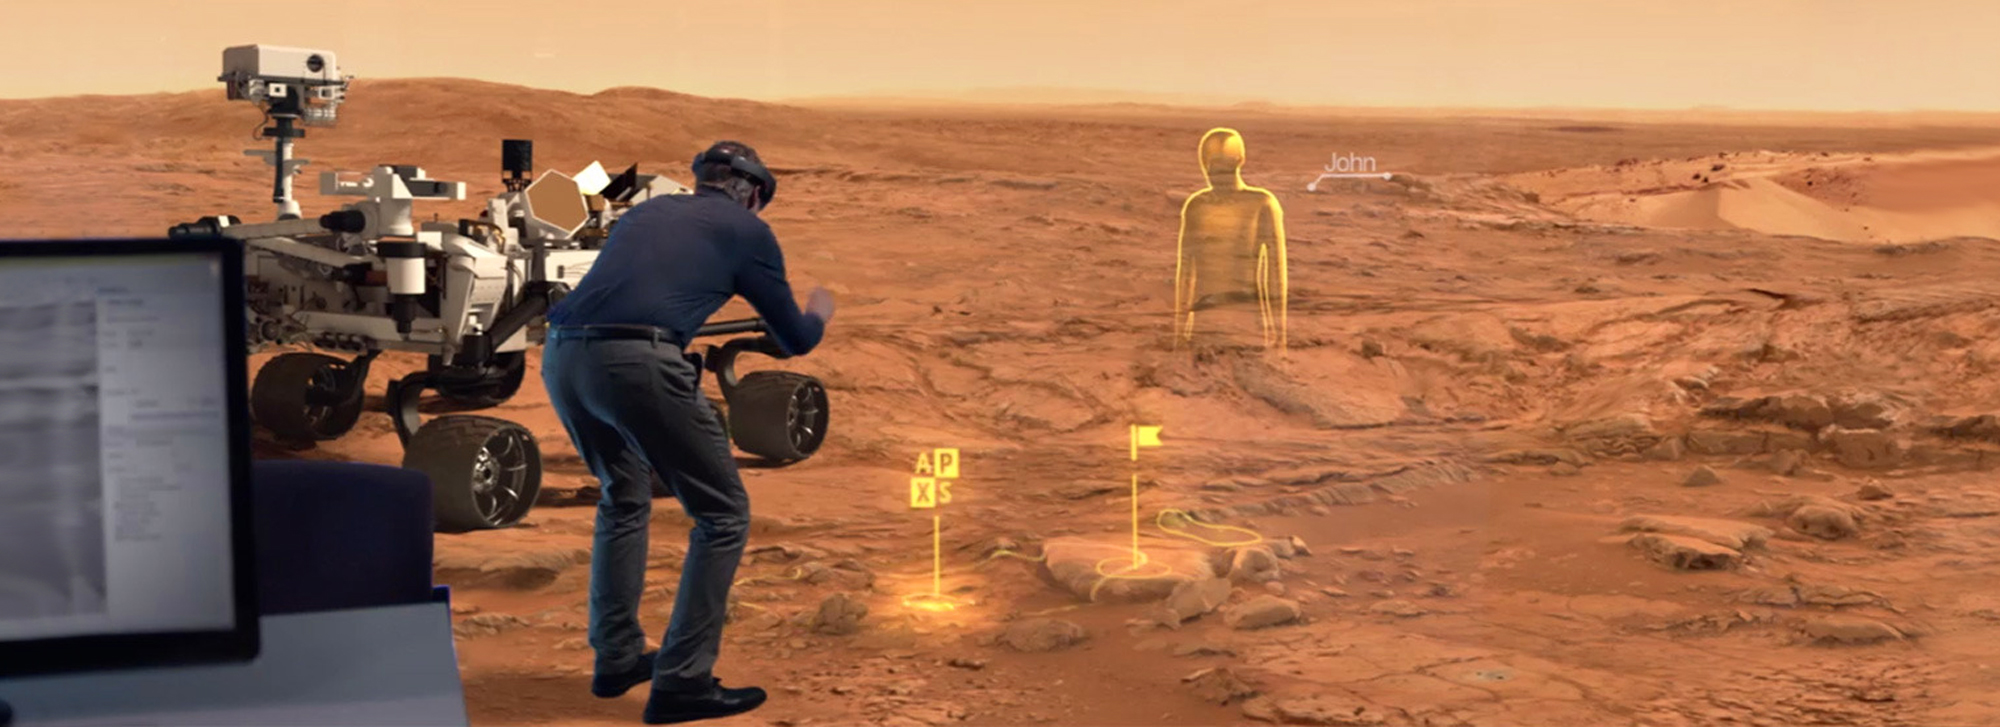 Virtual and Augmented Reality for Space Science and Exploration